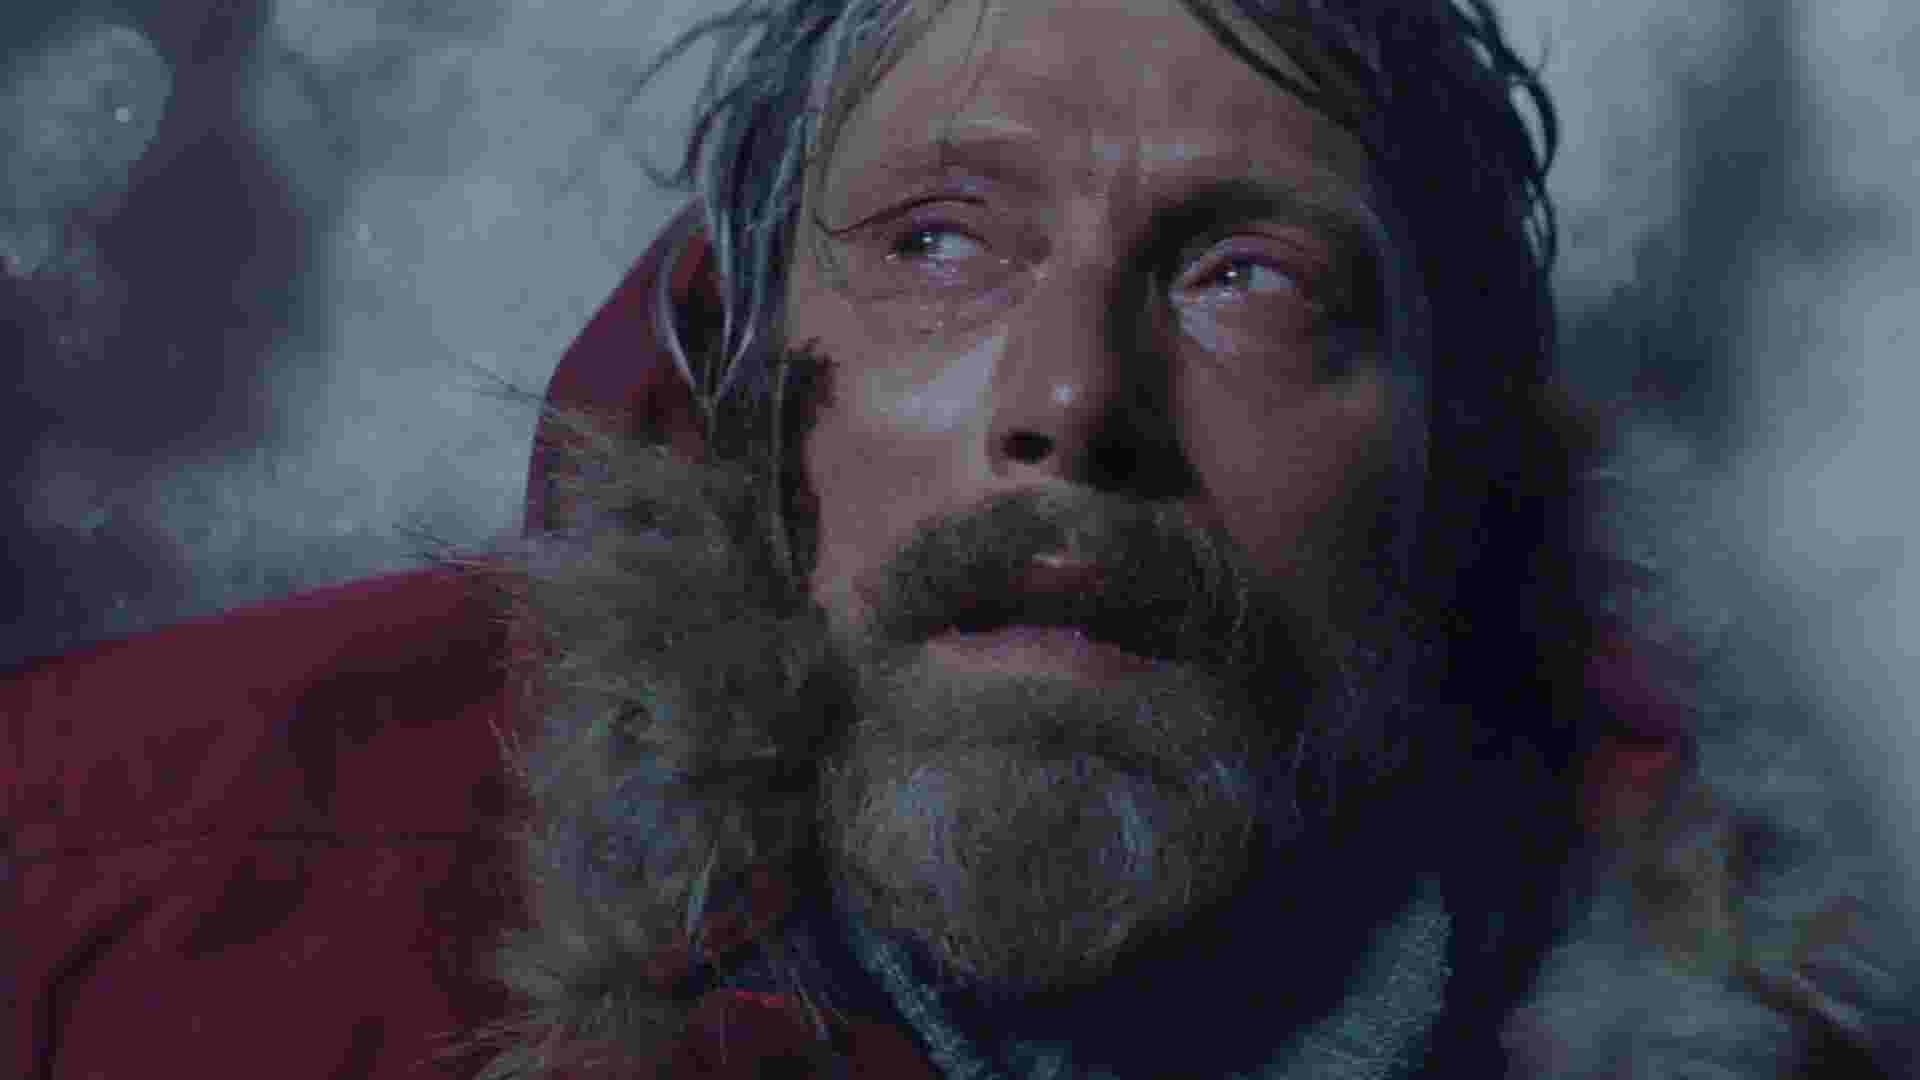 'Arctic' trailer is a bone-chilling story of survival